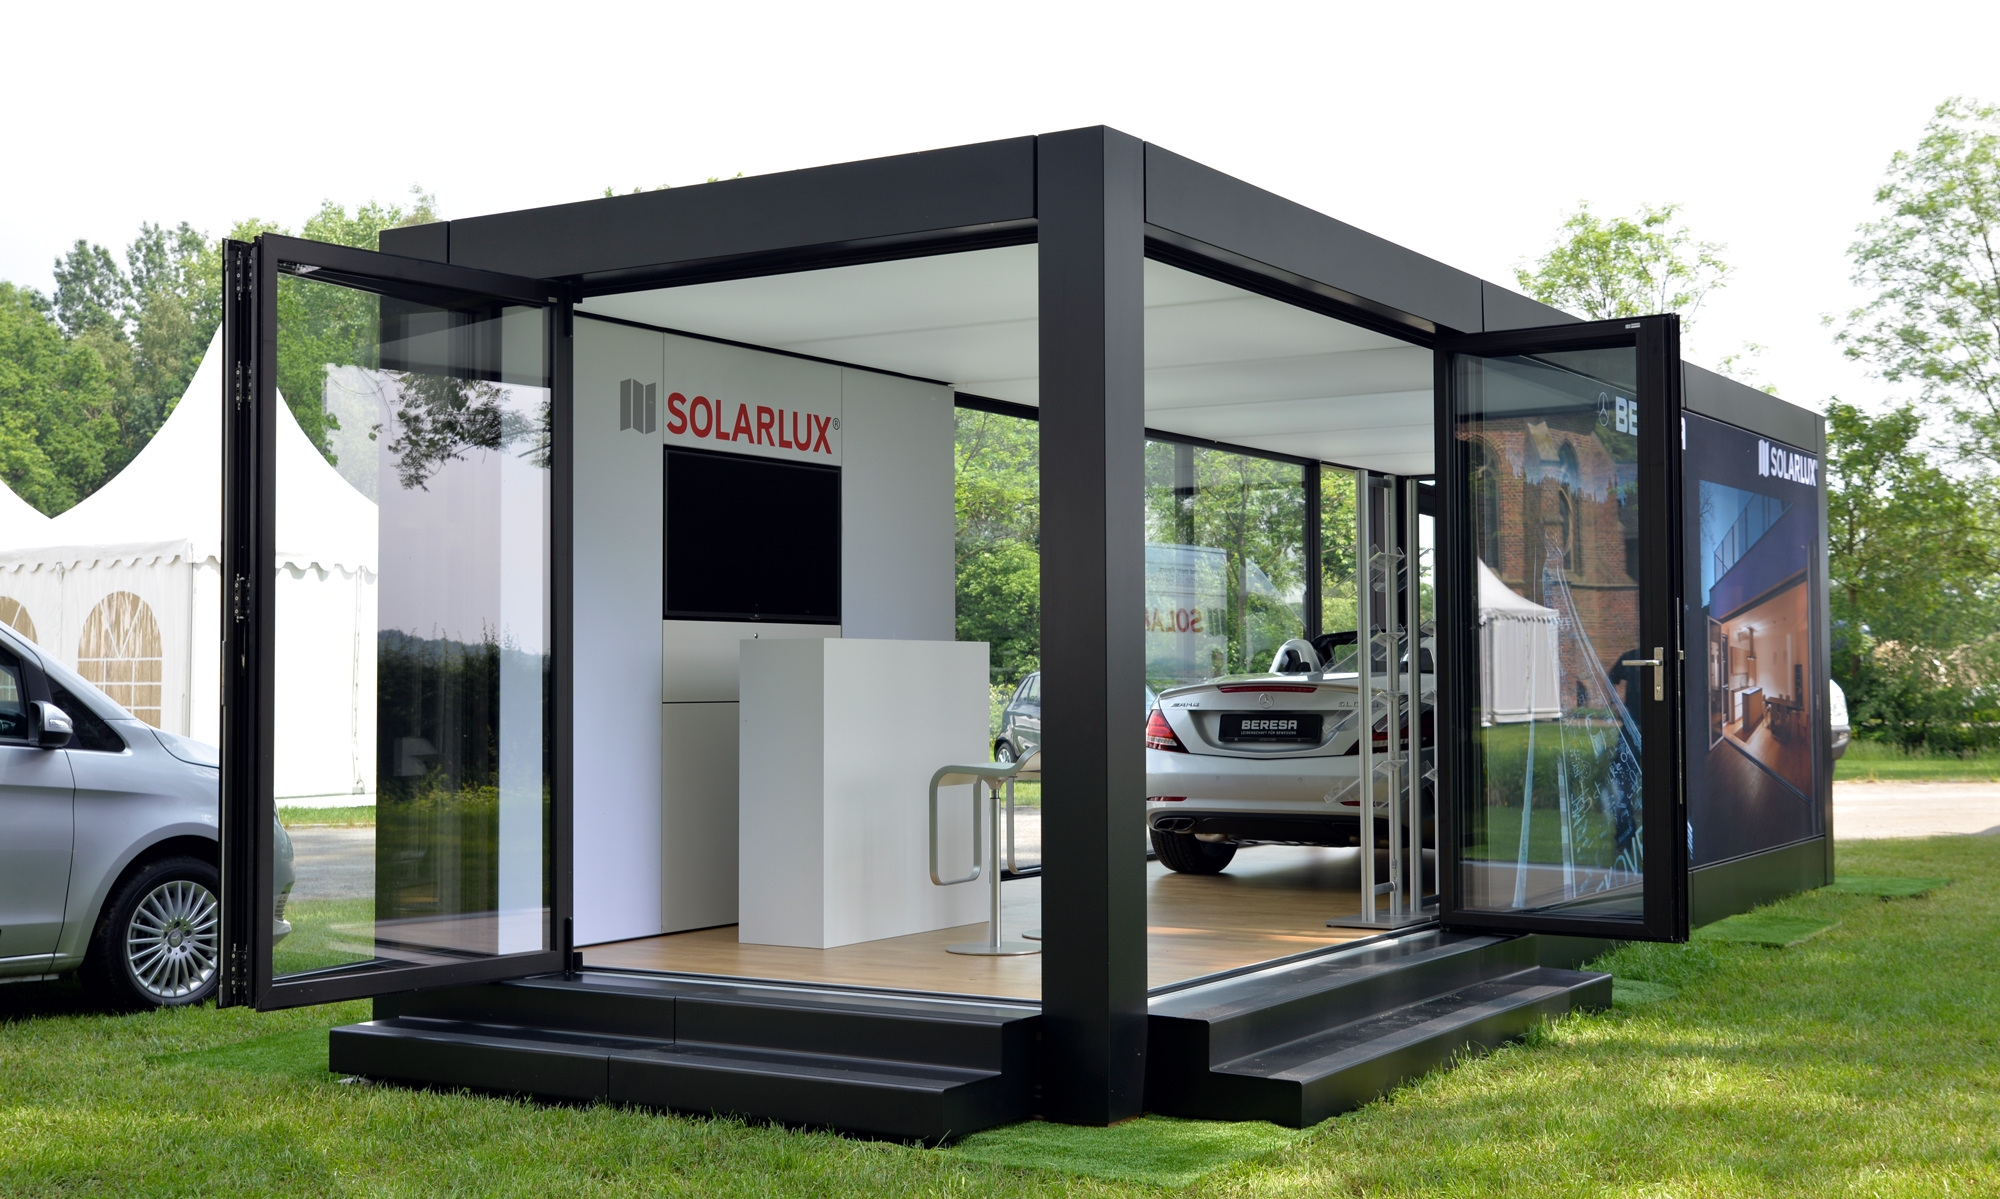 solarlux auf landpartie solarlux blog. Black Bedroom Furniture Sets. Home Design Ideas